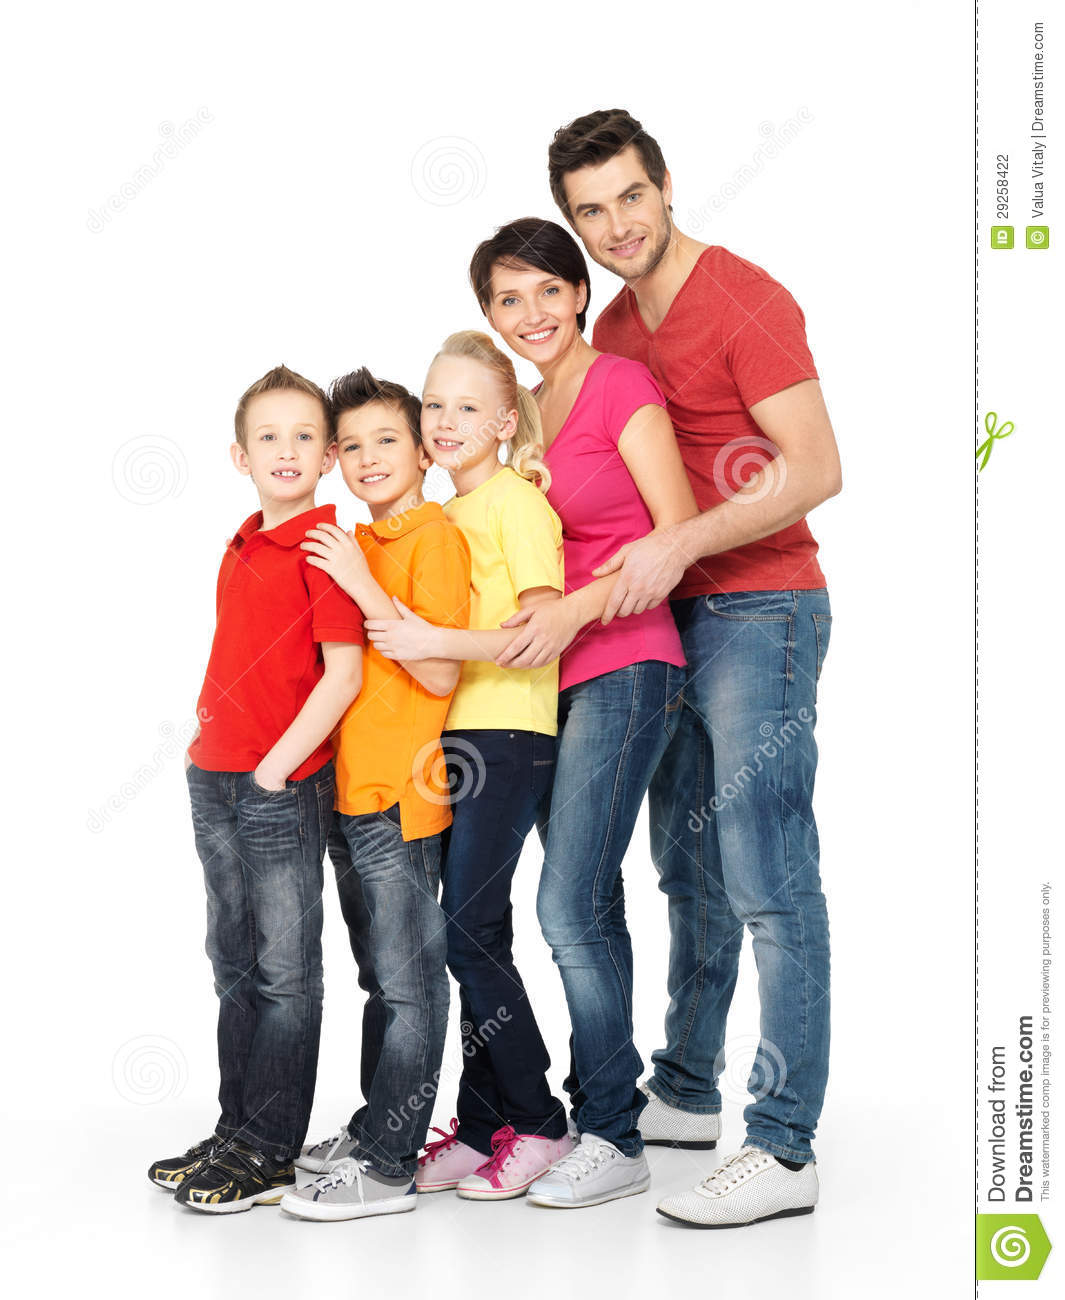 Happy Family With Three Children Standing Together Stock